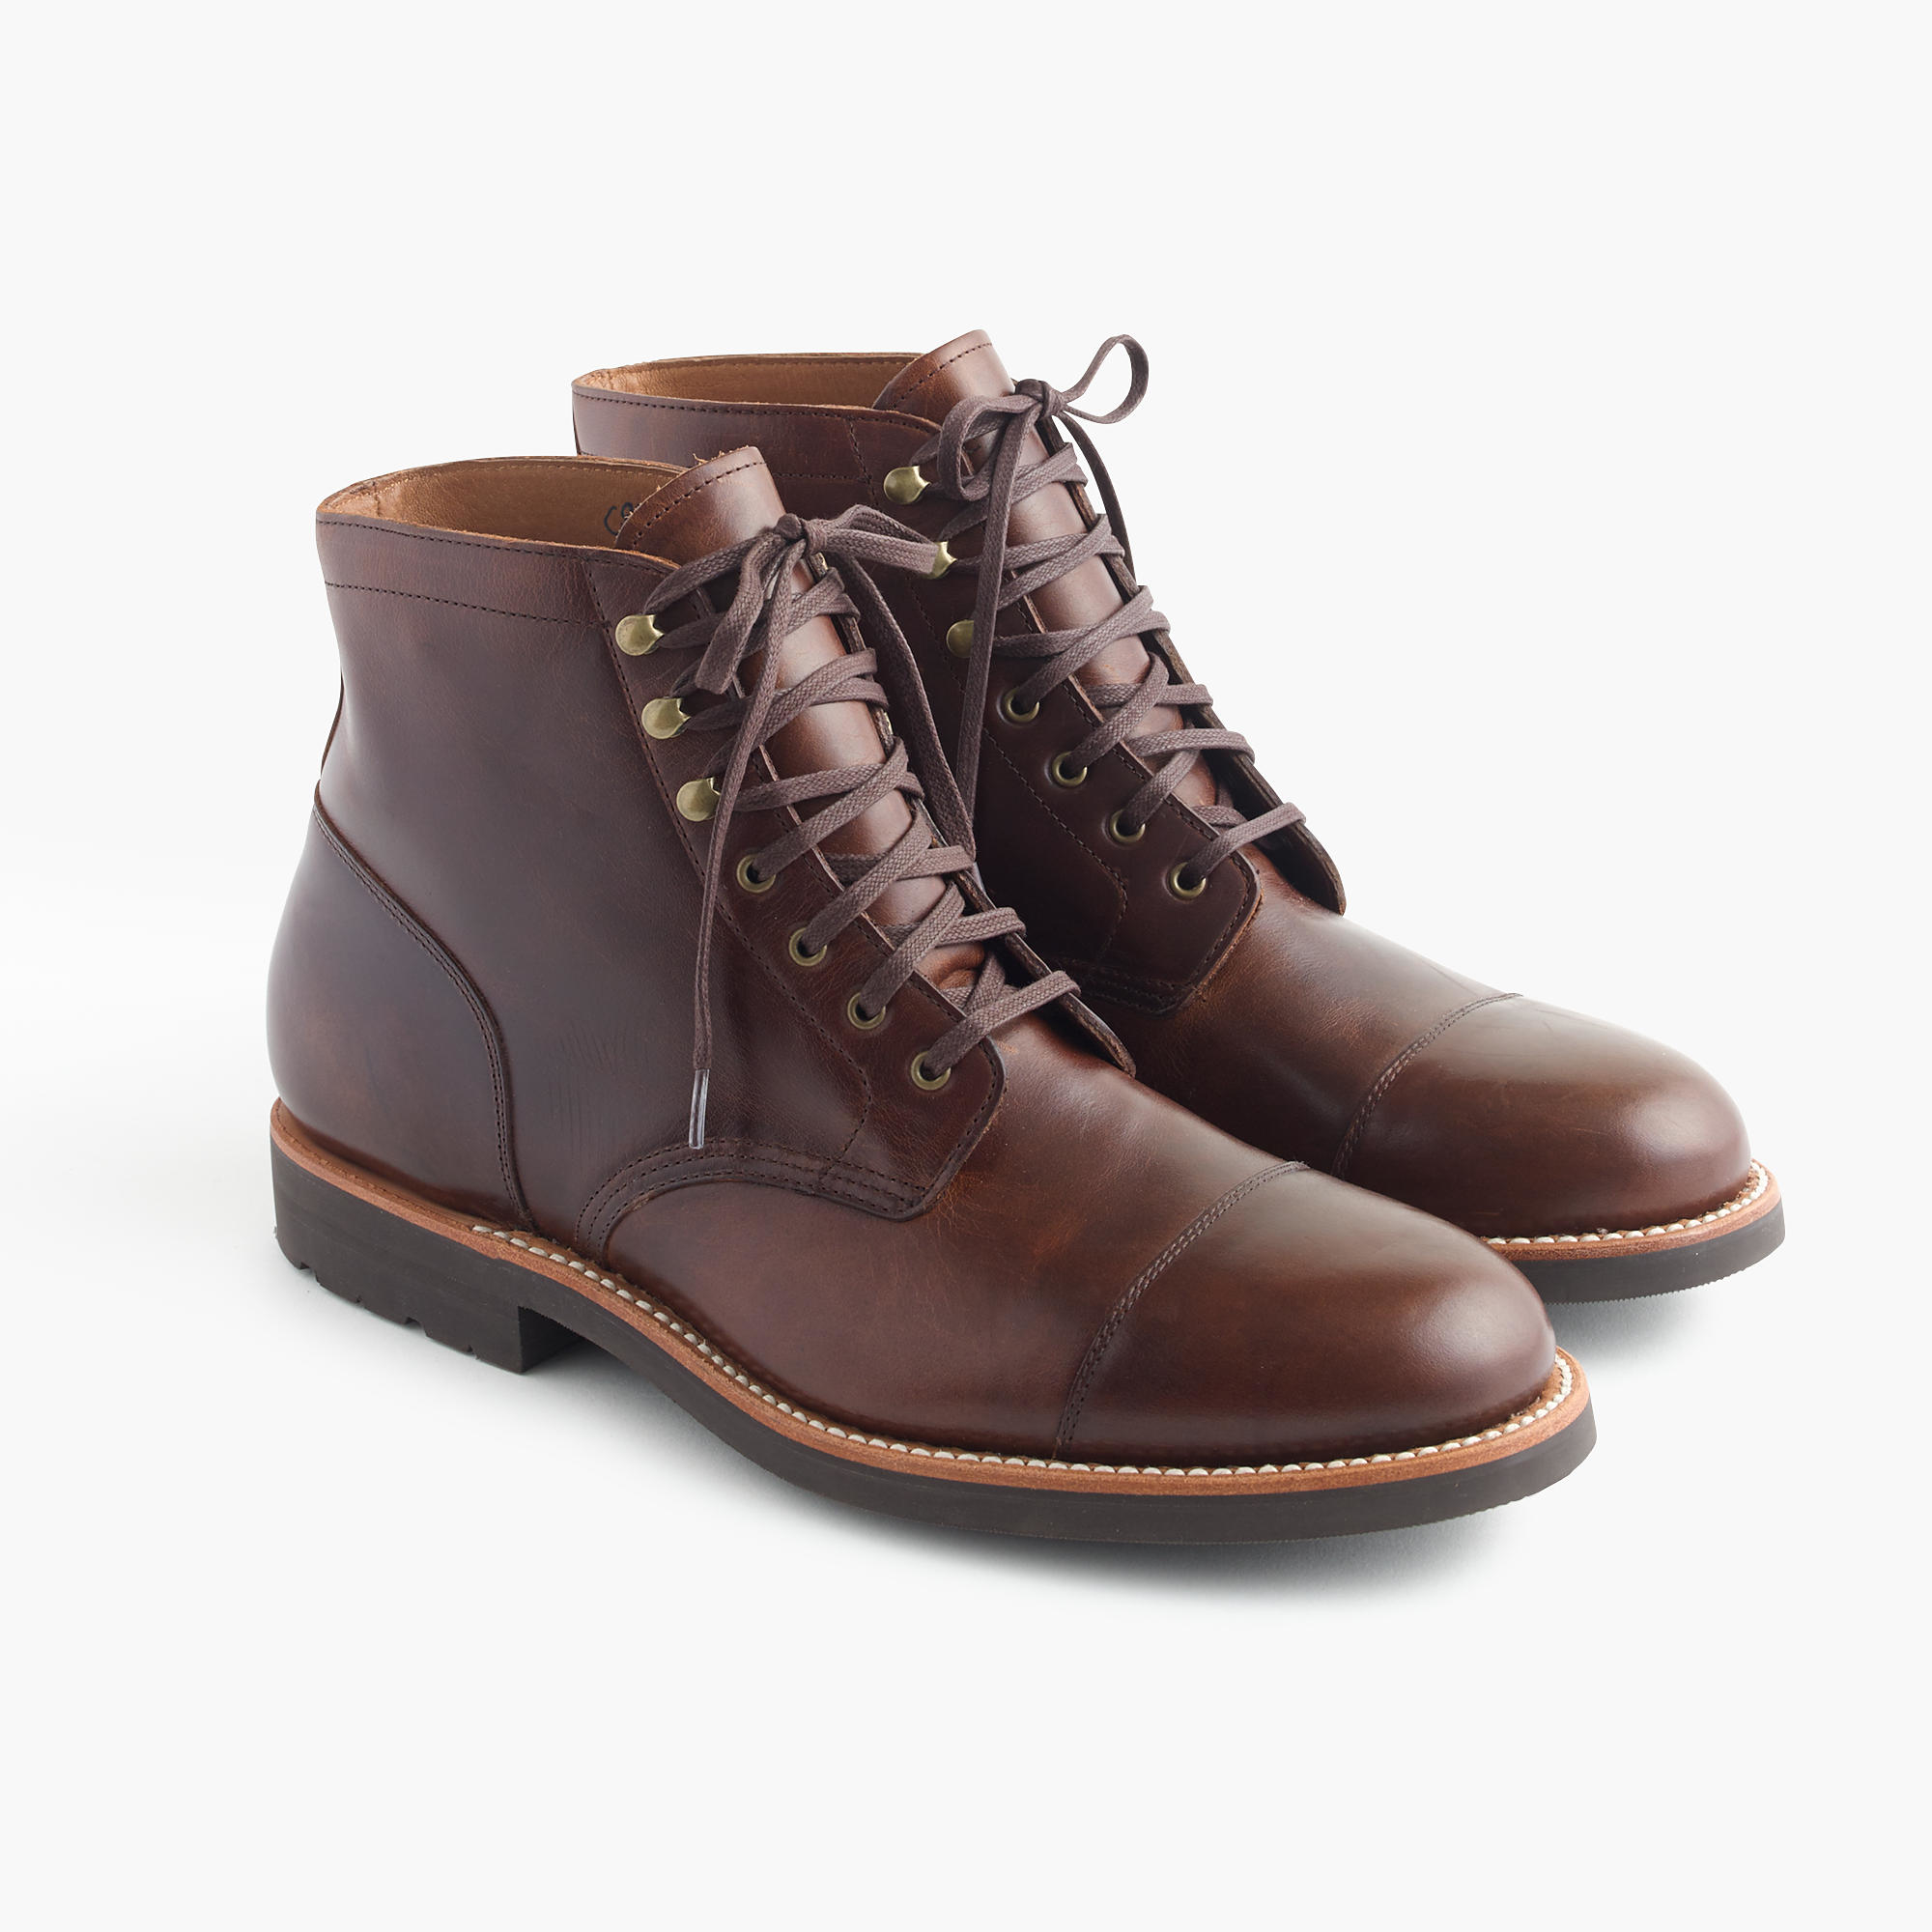 J.crew Kenton Leather Cap-toe Boots in Brown for Men | Lyst